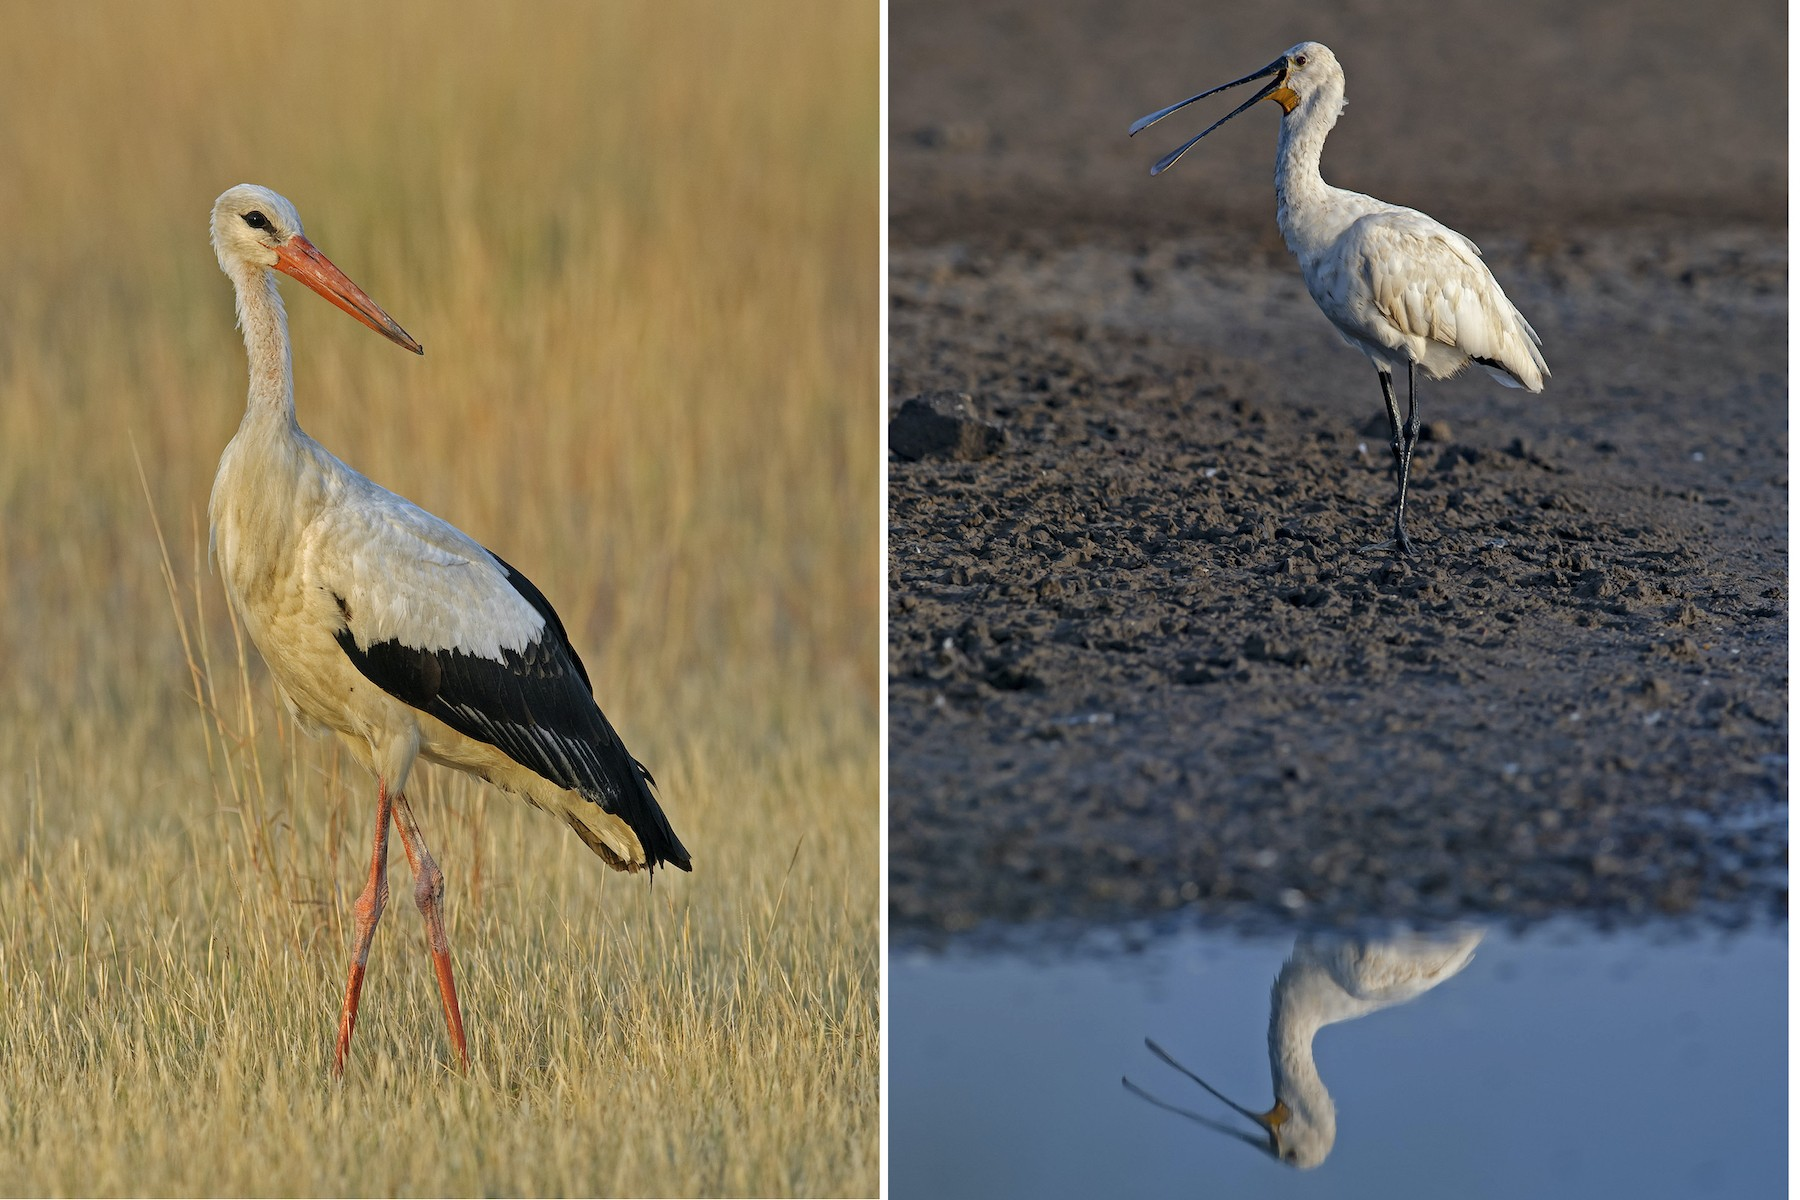 Winter is a season of great diversity in Velavadar, especially near water bodies where birds such as the white stork (left) and spoonbill (right) can be sighted.  Photos: Dhritiman Mukherjee